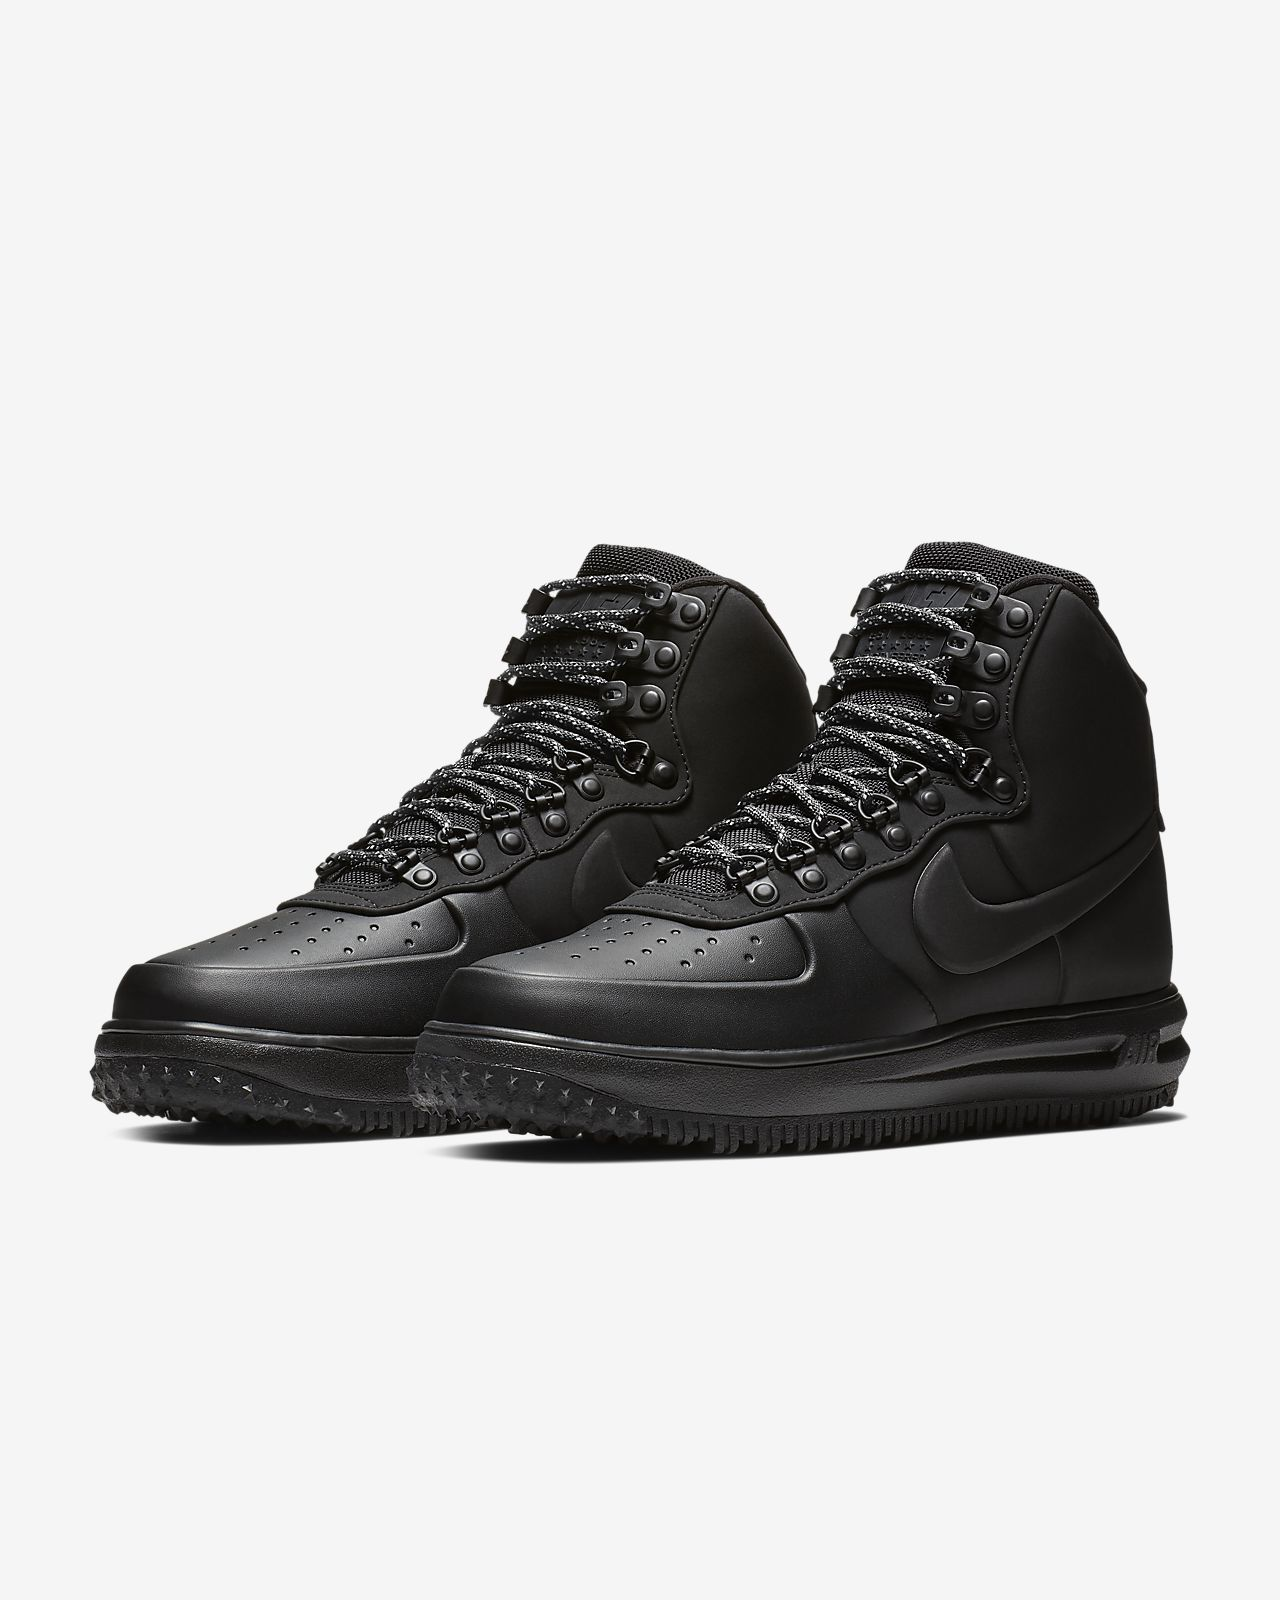 Force Lunar '18 Duckboot Homme pour Nike 1 rBCdxWQoe